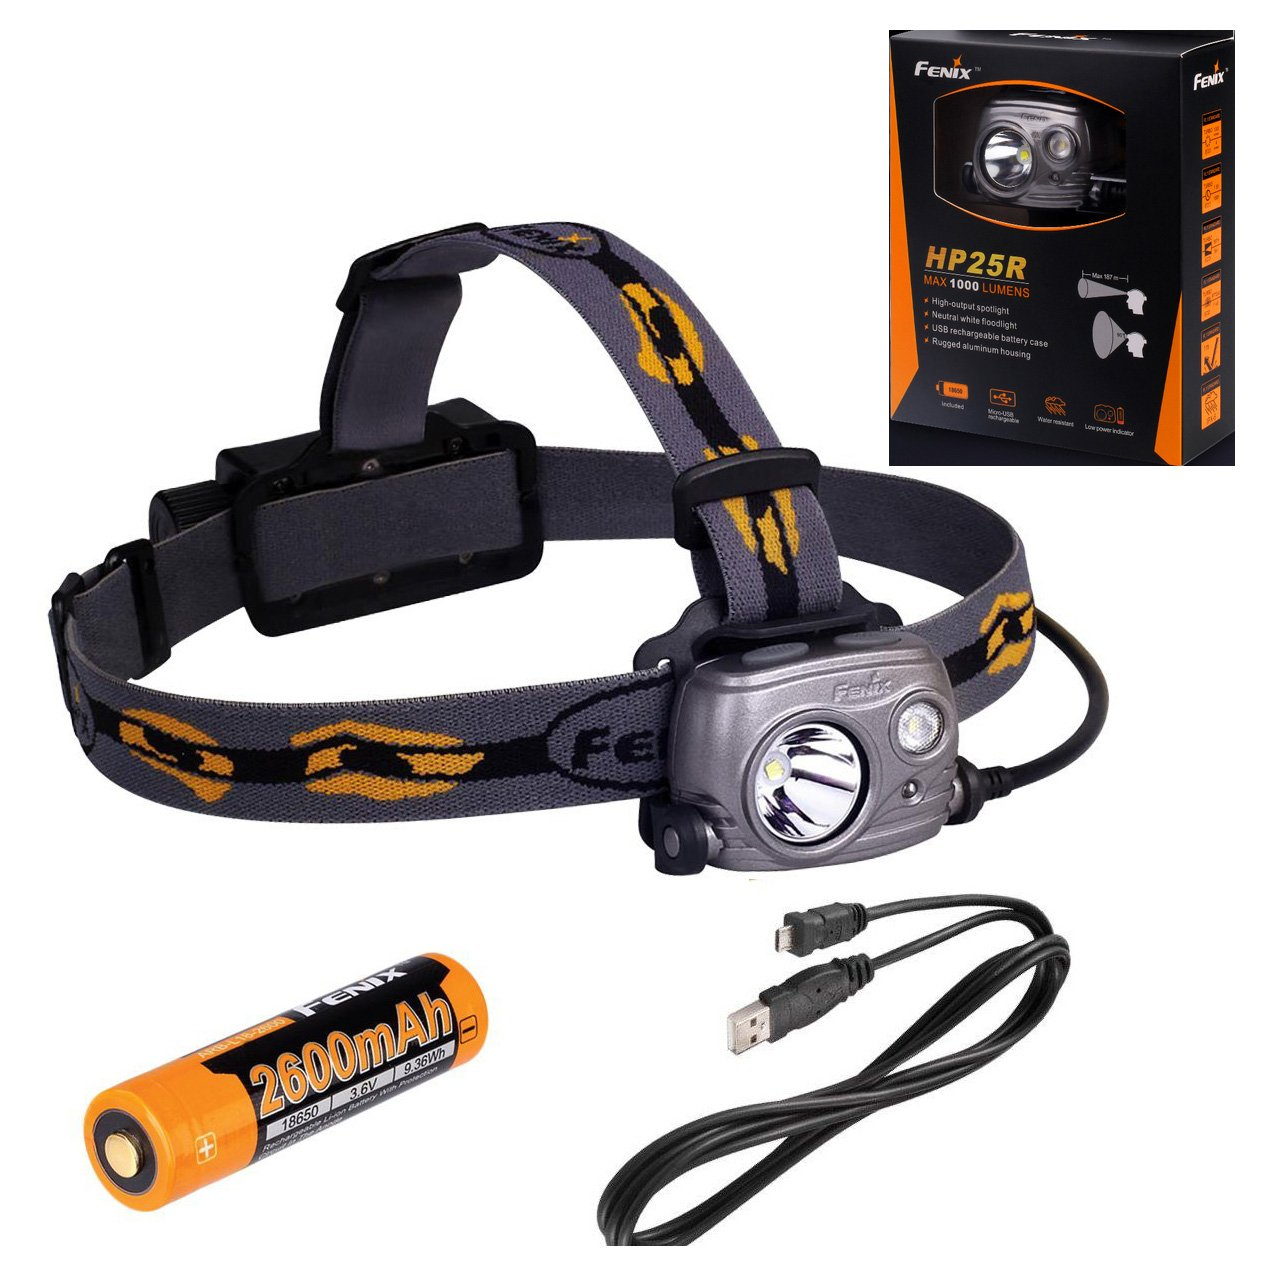 Fenix HP25R Rechargeable LED Flashlight 1000 Lumen Headlamp, Spotlight Flood-Beam Red-Light with 18650 Rechargeable Battery and LegionArms USB charging cord